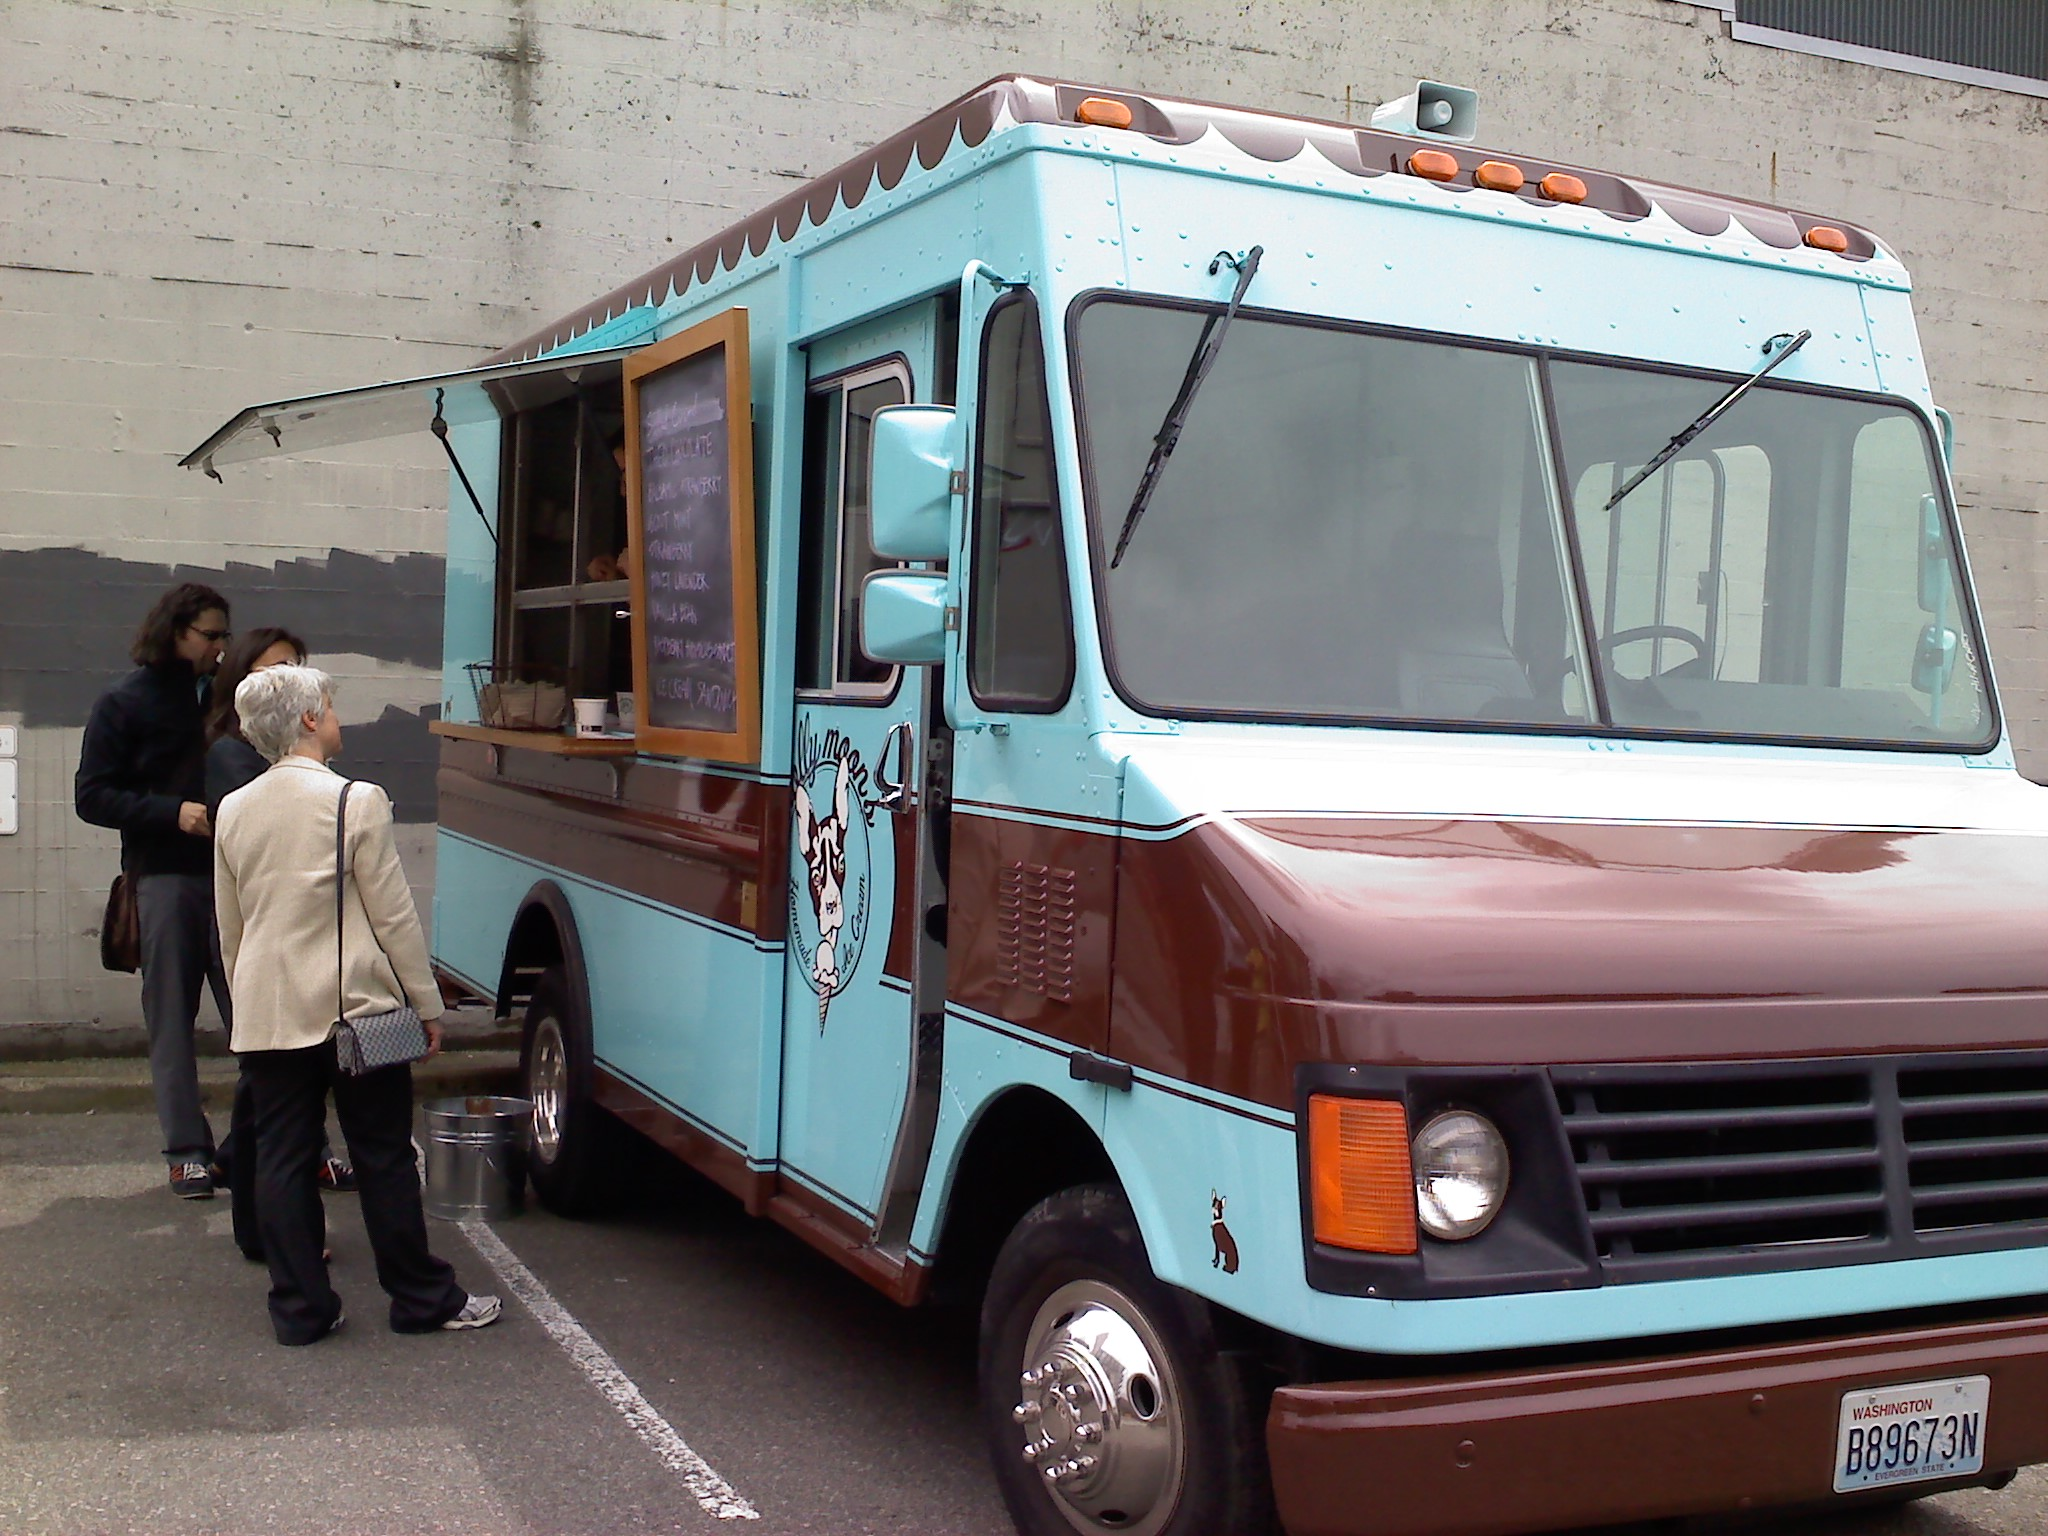 Leo, Molly Moon's ice cream truck, will be at March to the Center of the Earth: Community Night Out on May 5 at the Seattle Art Museum